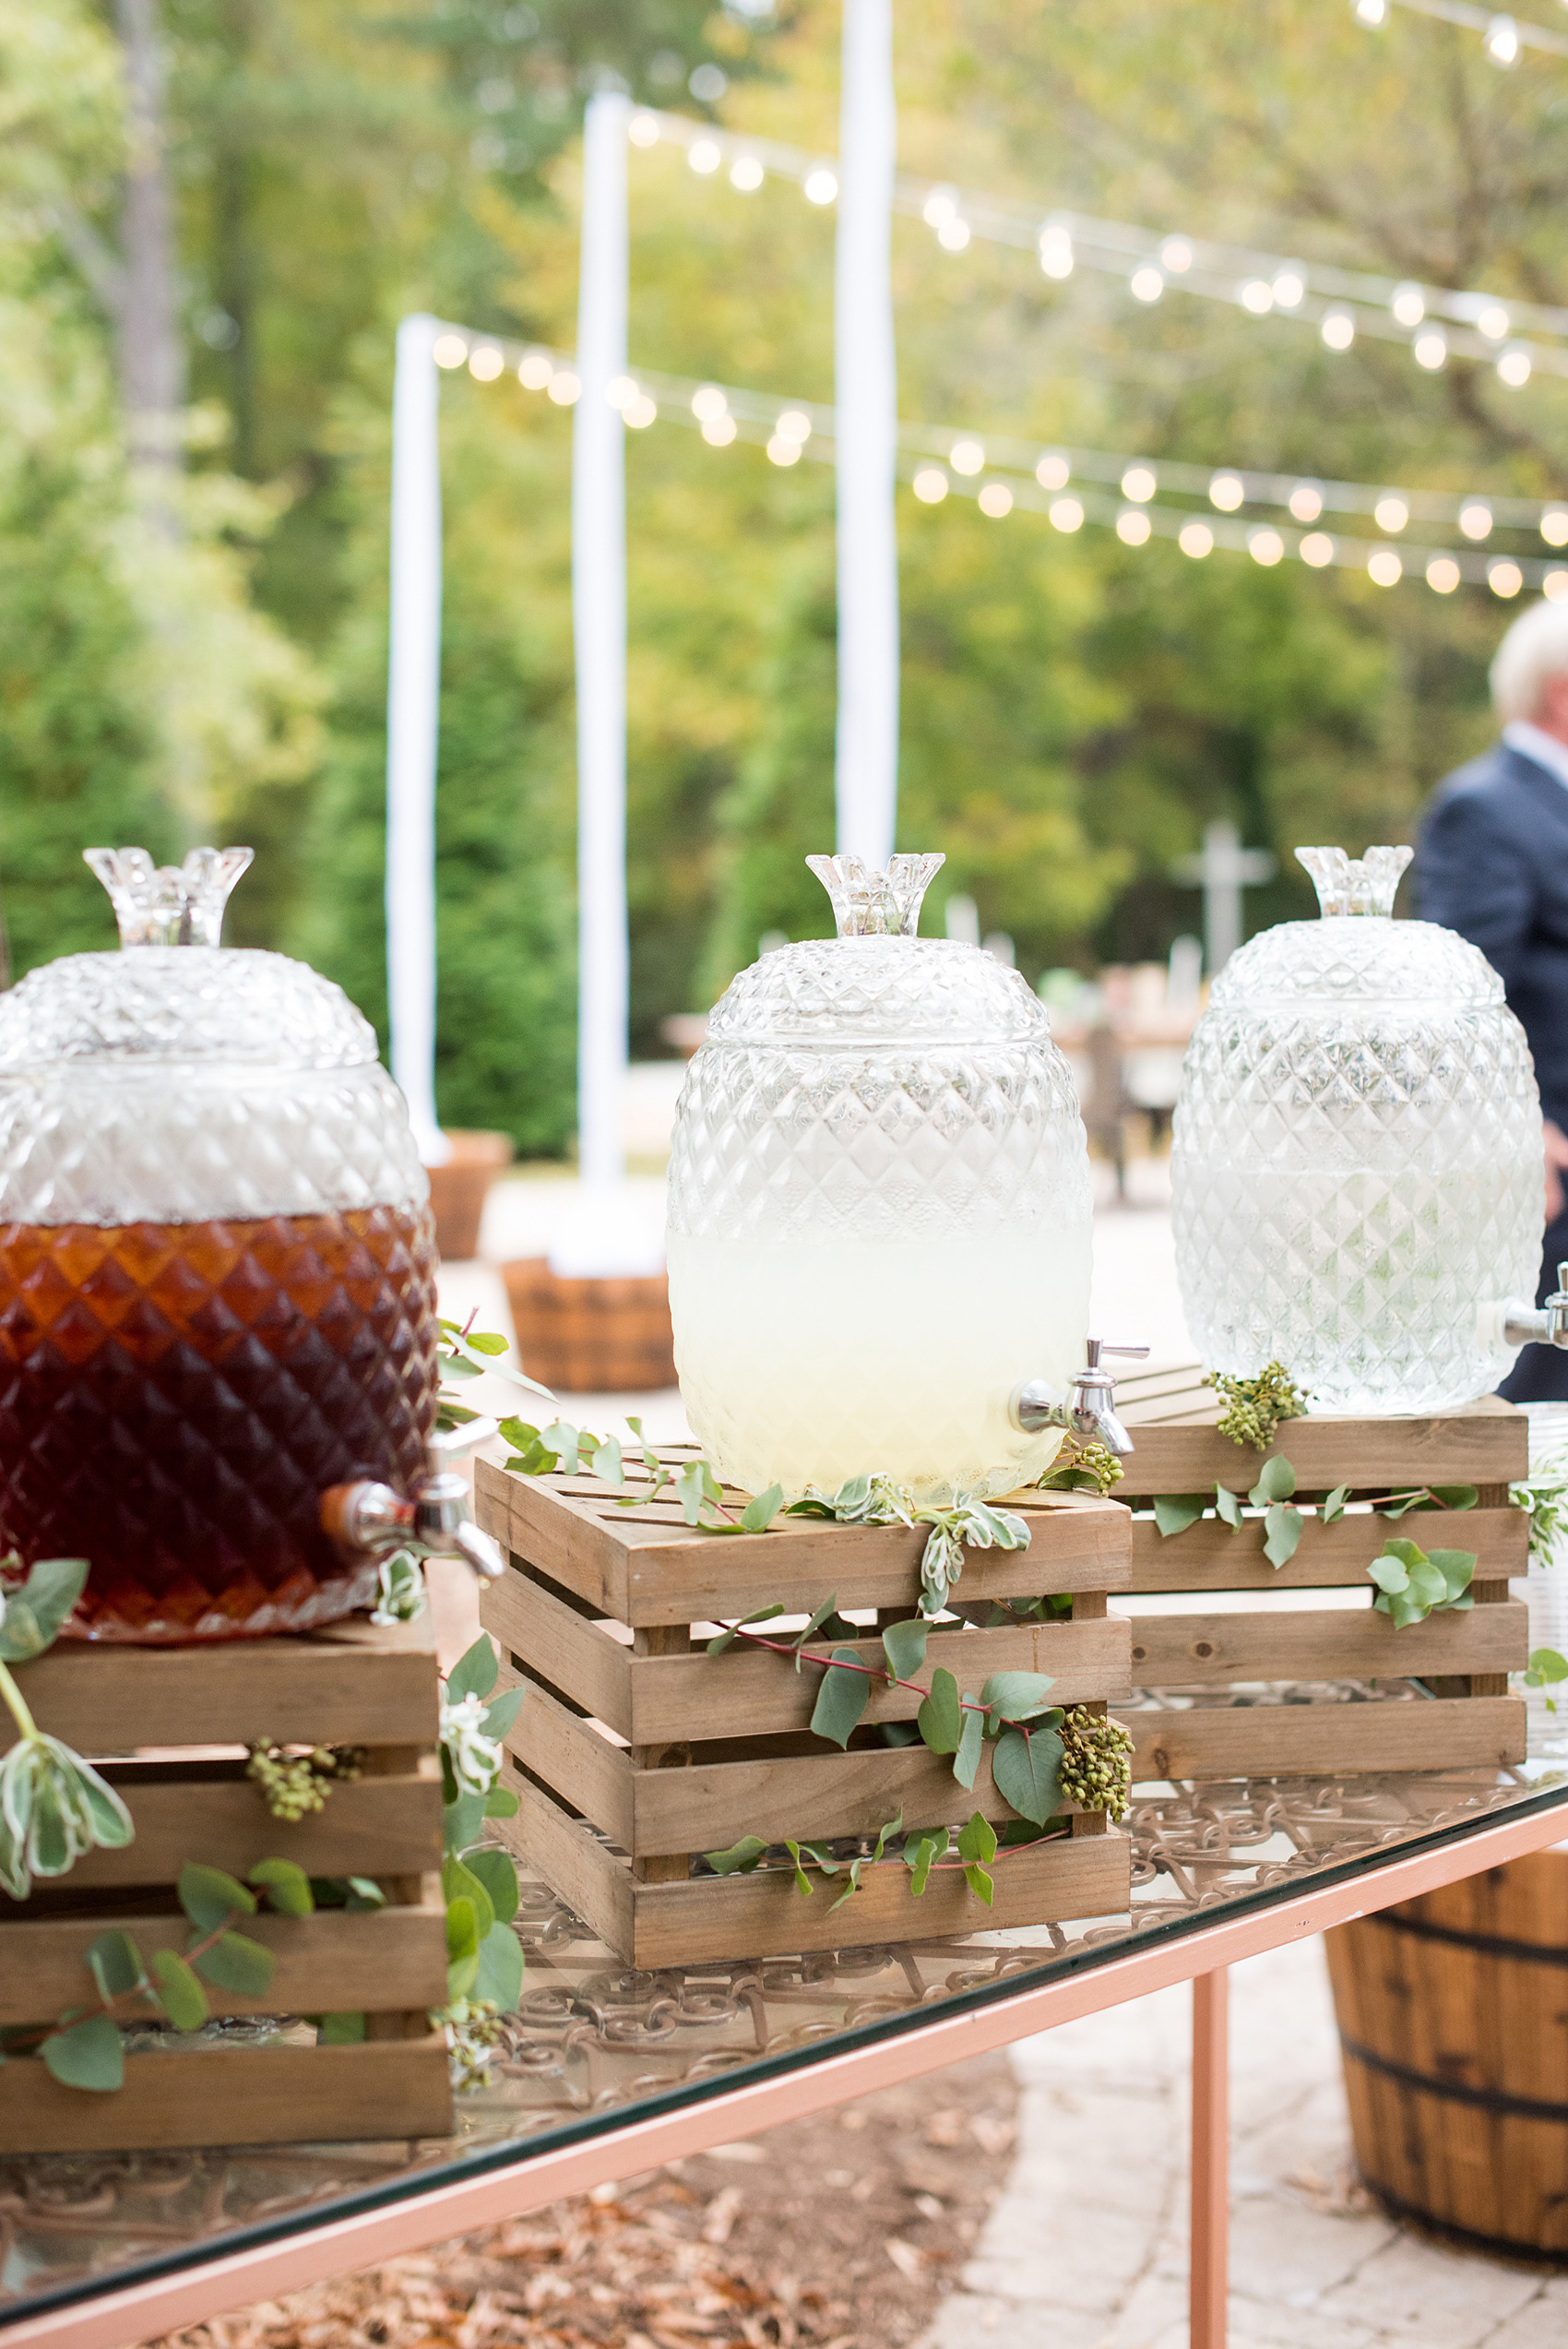 Mikkel Paige Photography photos from a wedding at Leslie-Alford Mims House in North Carolina. Picture of the stylized catering drinks on wooden crates for the boho event.